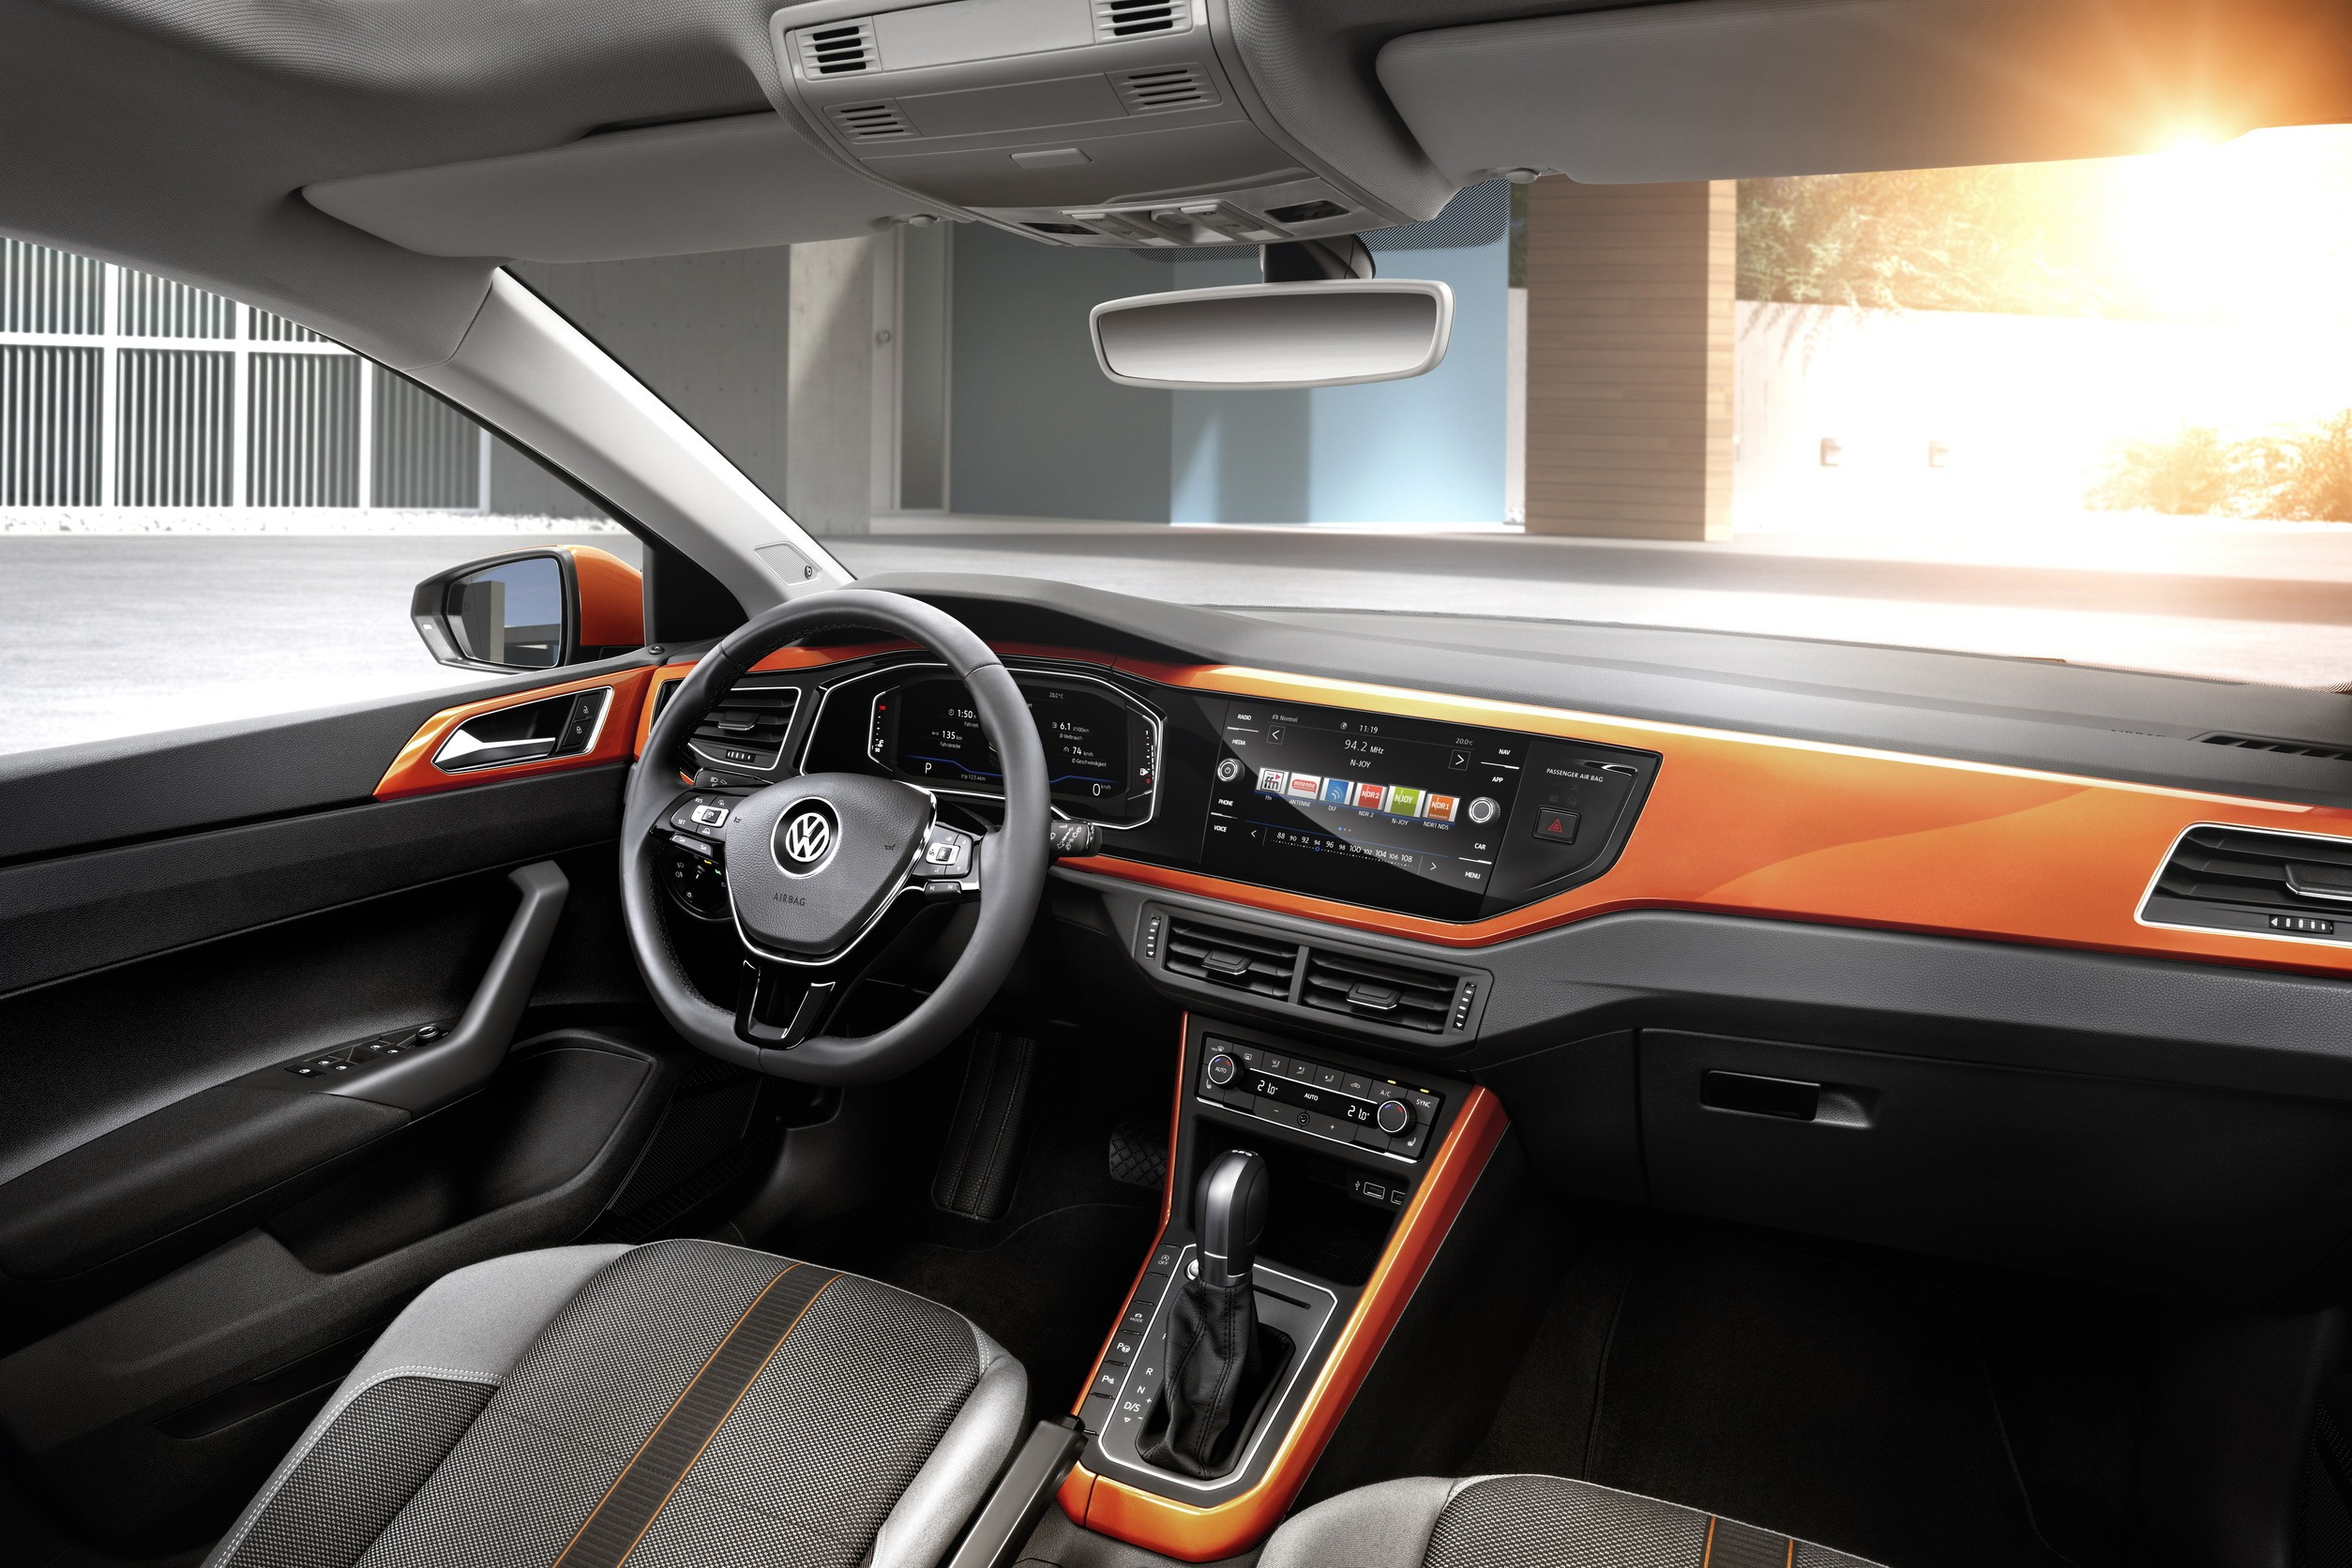 vw polo interieur cockpit 2017 06 09 qf copyright volkswagen